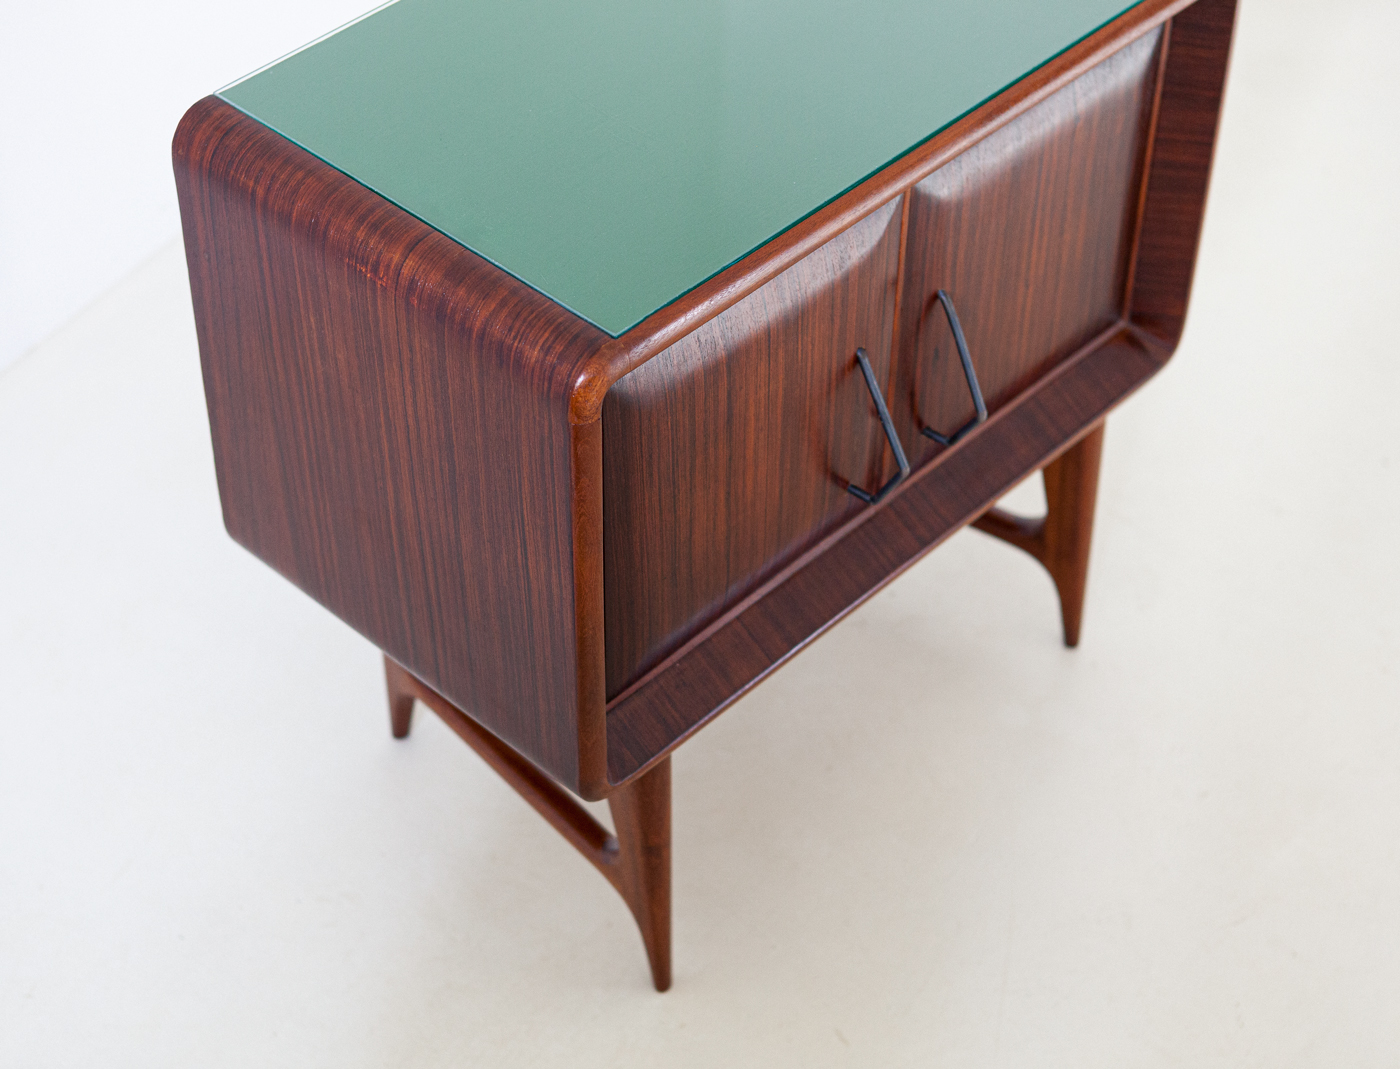 1950s-italian-rosewood-bedside-tables-with-green-glass-top-6-bt83